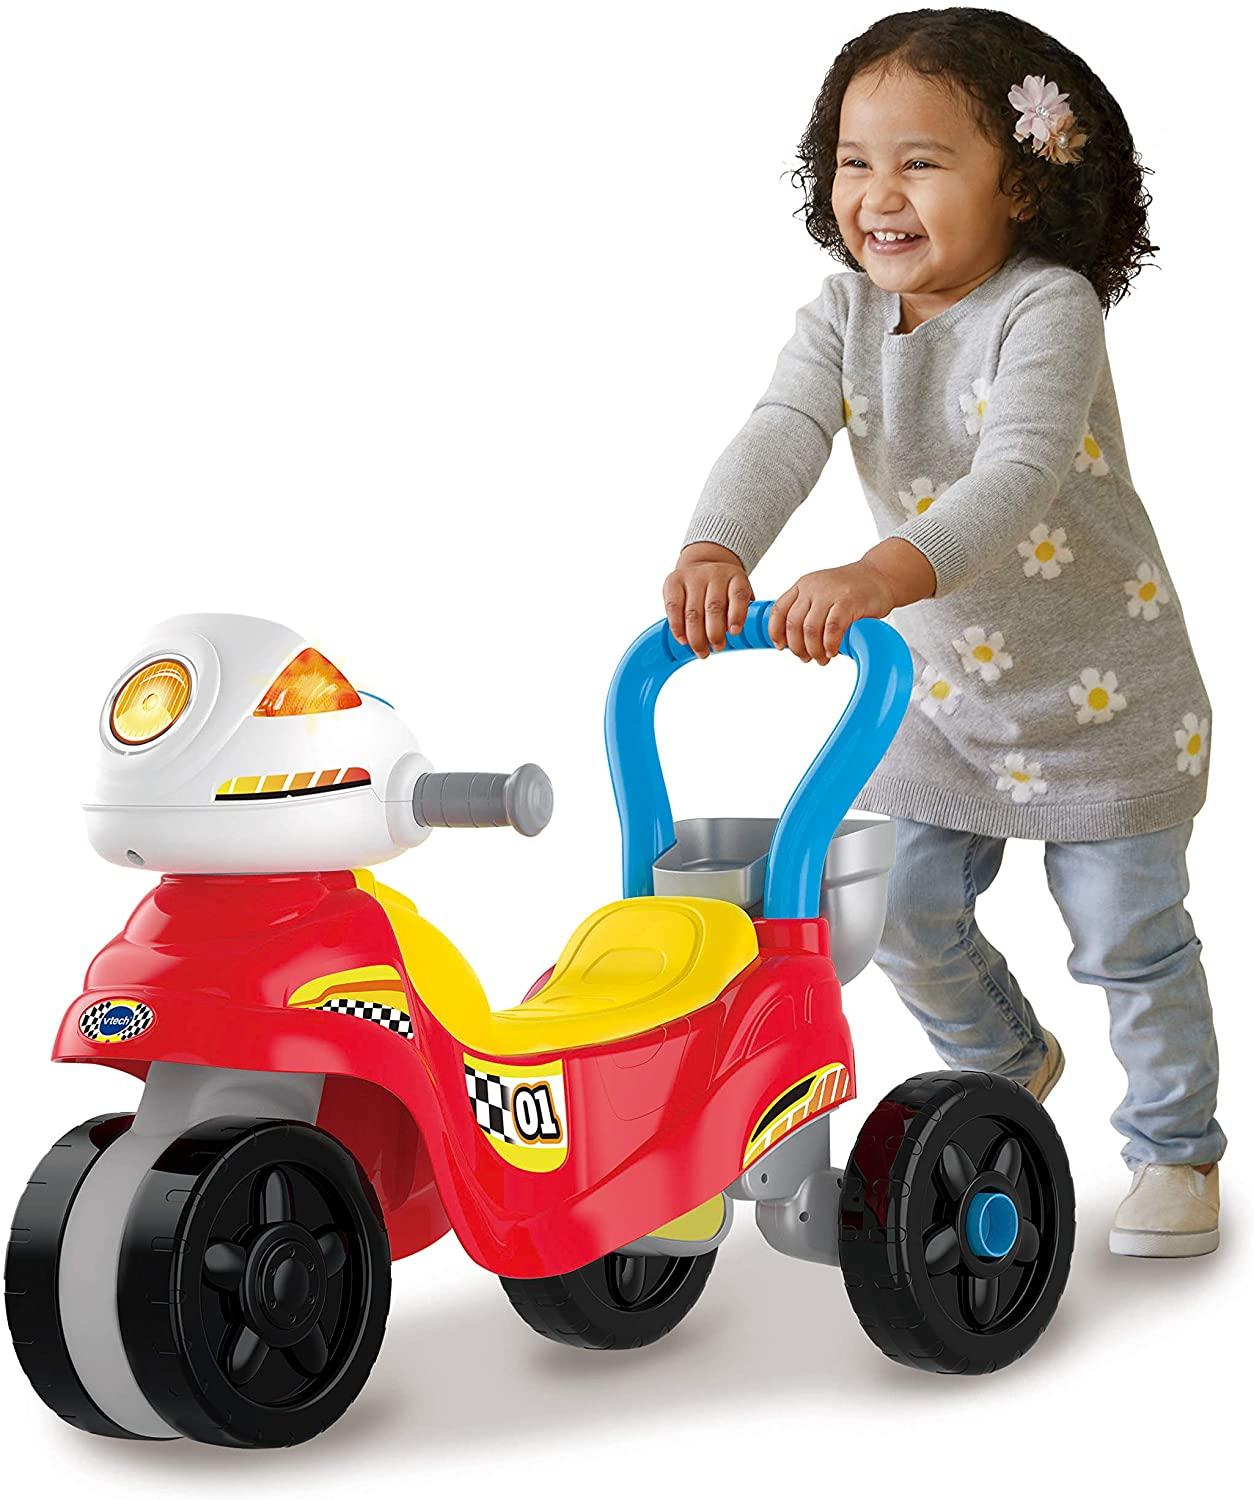 Vtech 3 in 1 Ride With Me Motorbike Toymaster Ballina